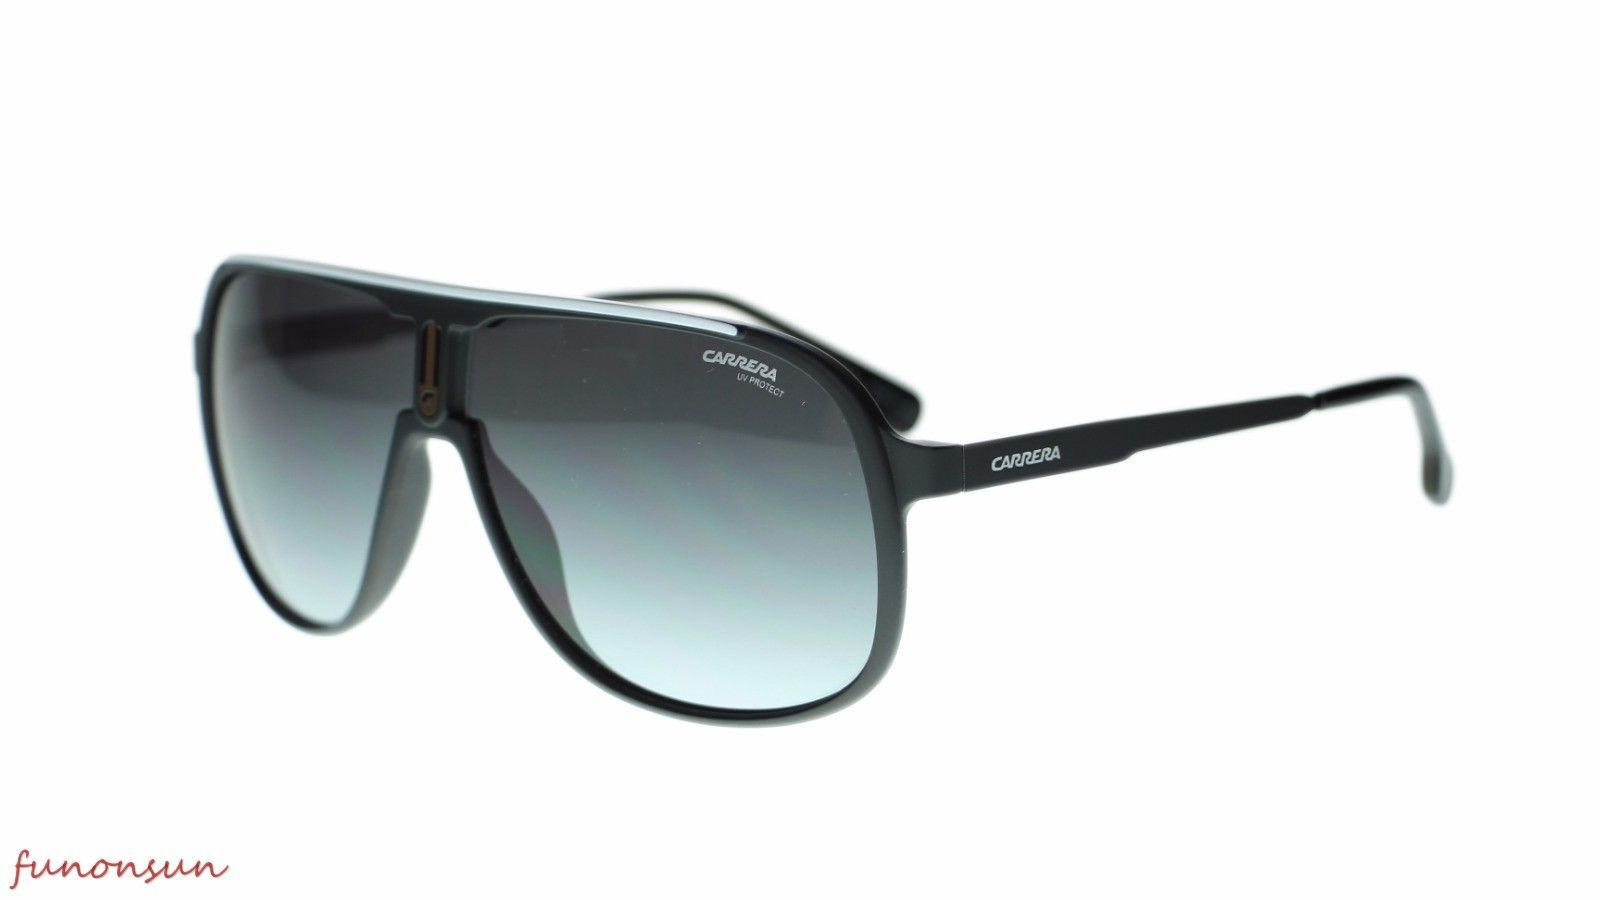 0a7a204a4f79d Carrera Men s Sunglasses 1007 S 0003 Matte and 14 similar items